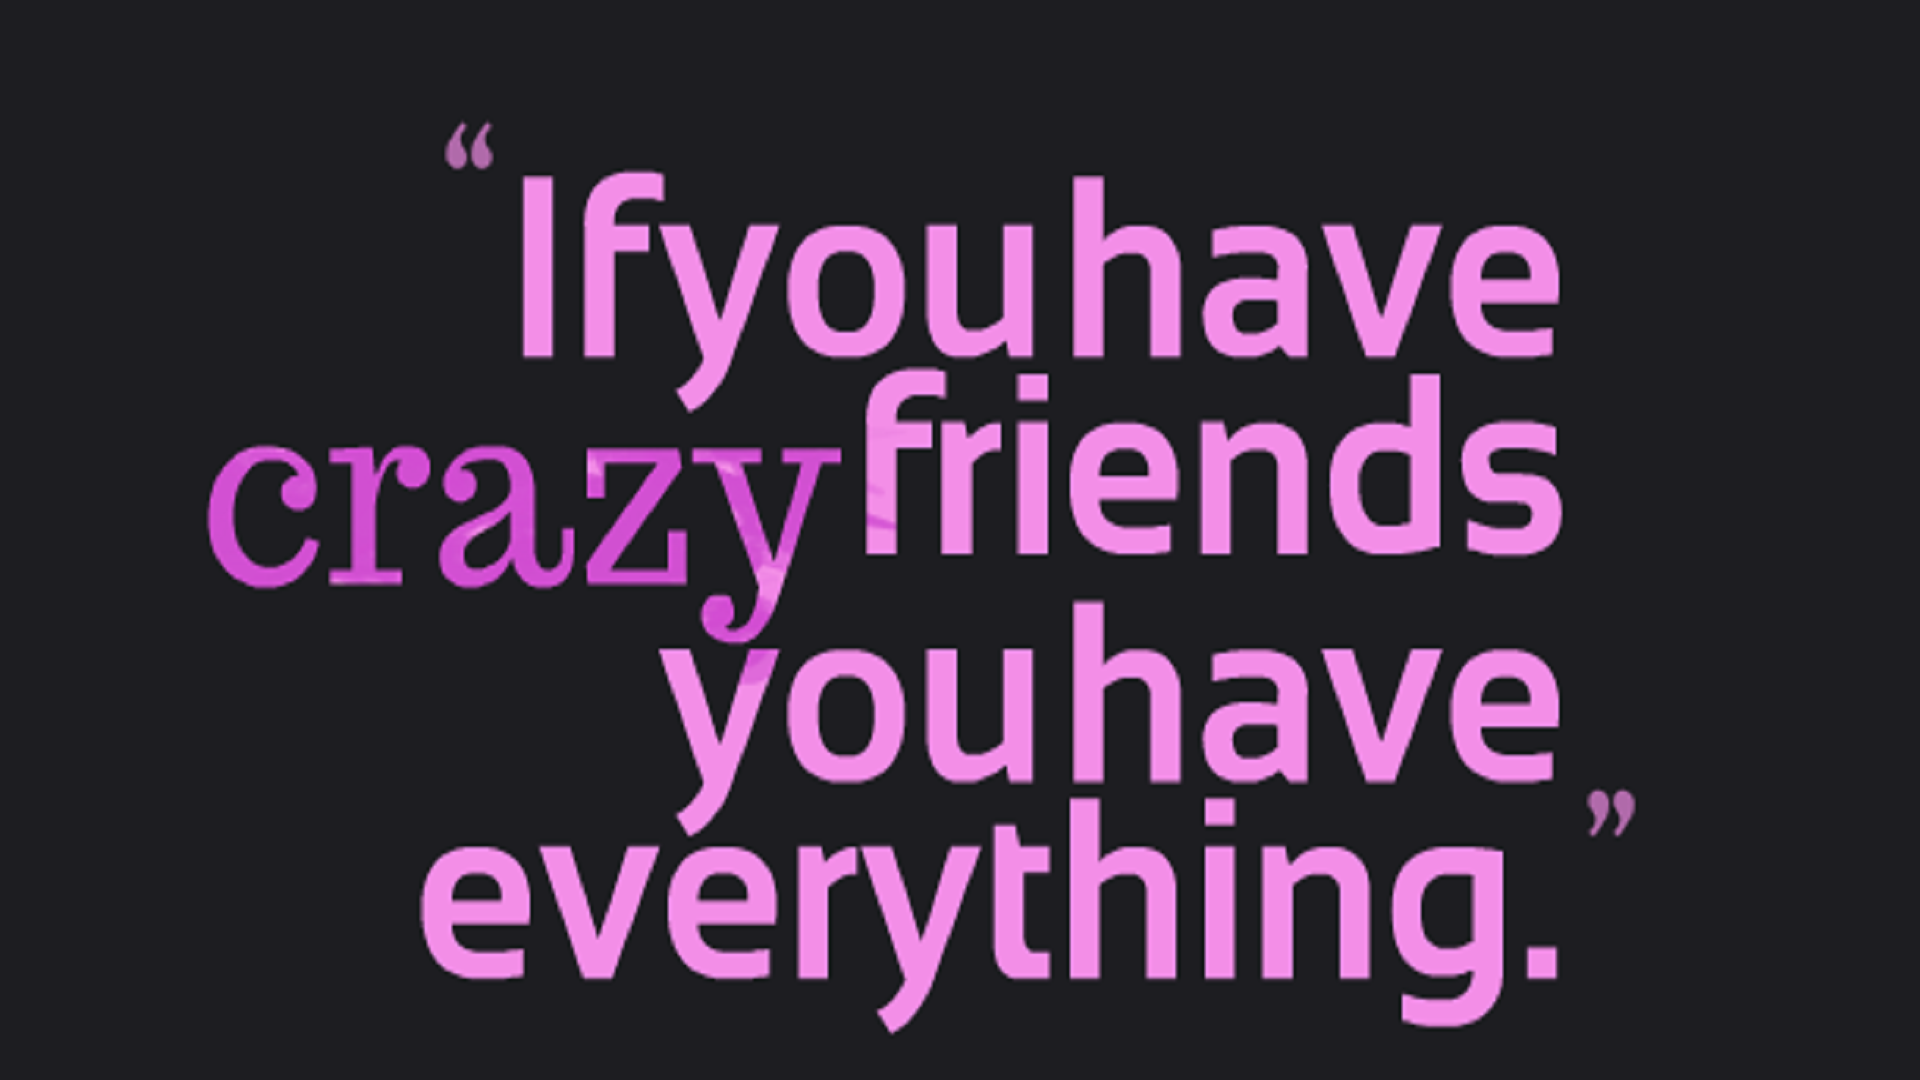 Top 23 Funny Quotes Bff Insane Hilarious Memes And Humor Pics Crazy Friends Silly Quotes Friends Quotes